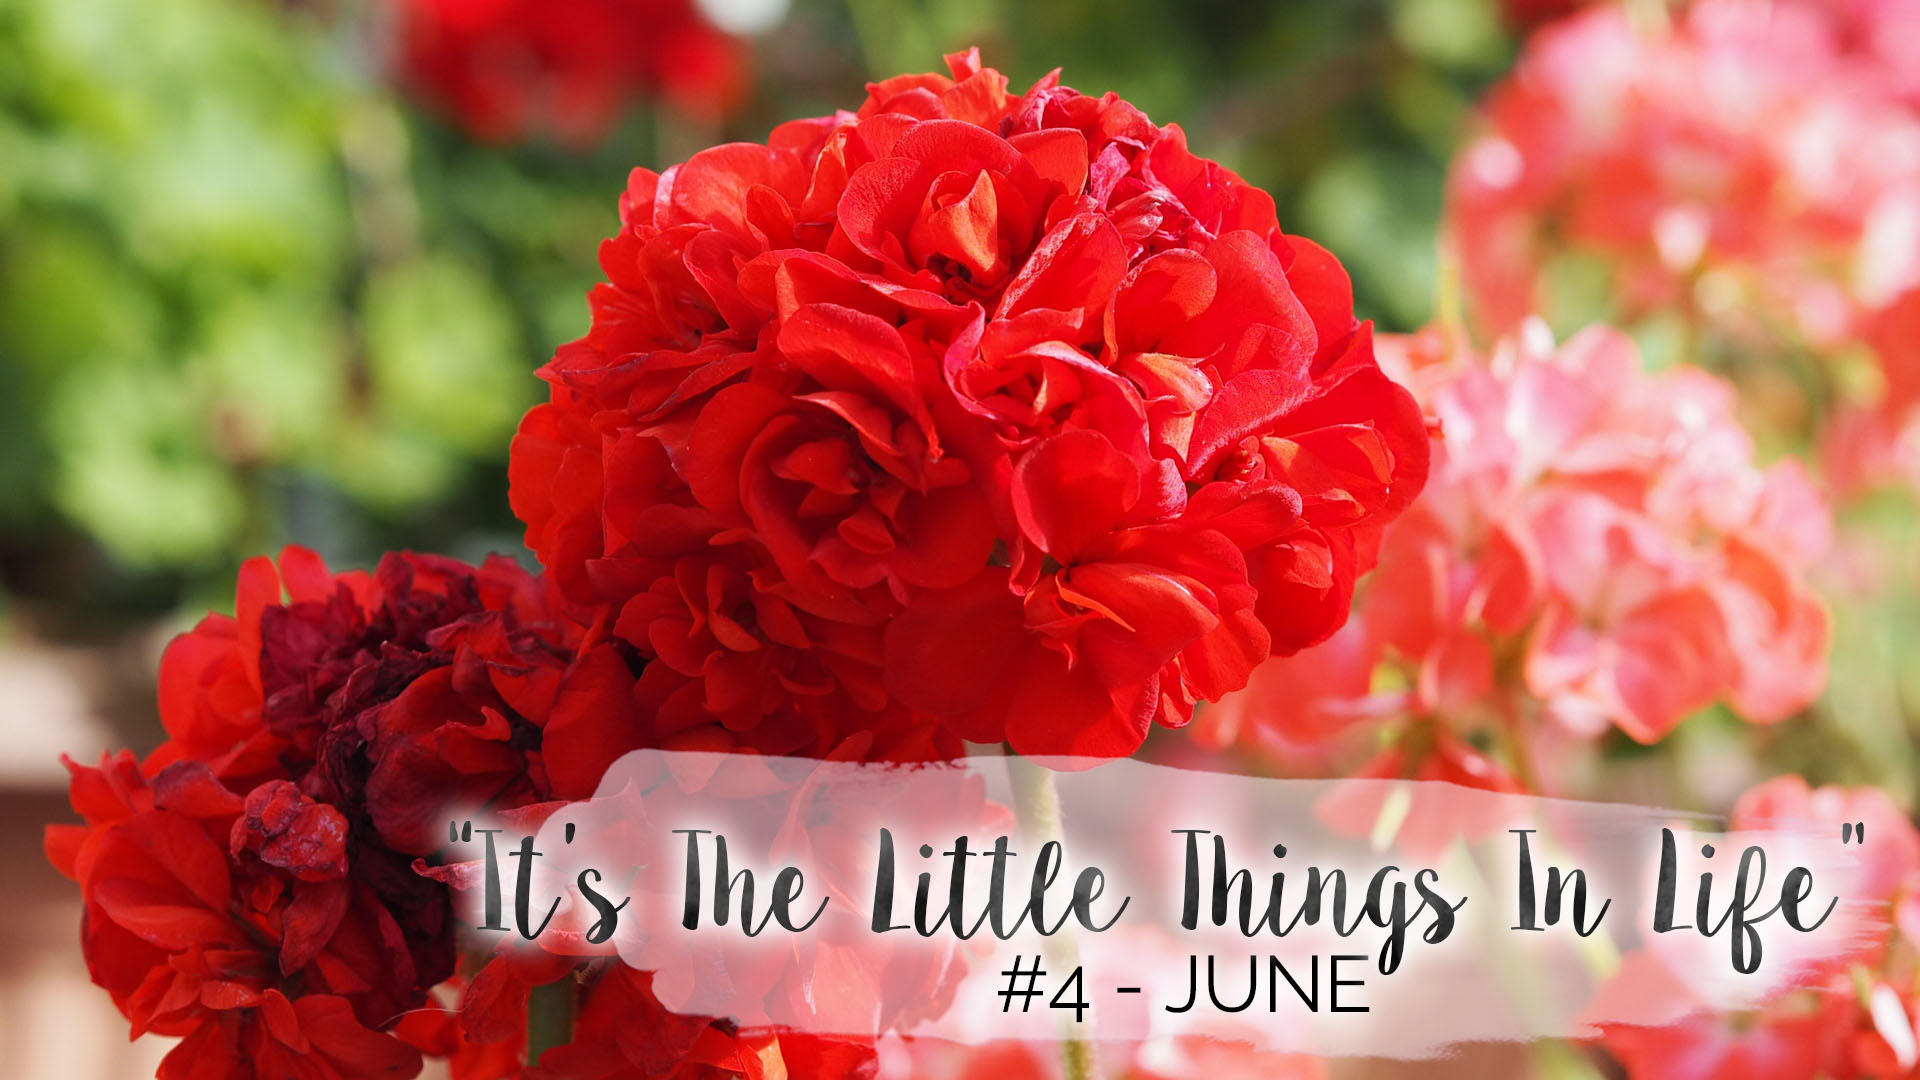 """It's The Little Things In Life"" - #4 - June 